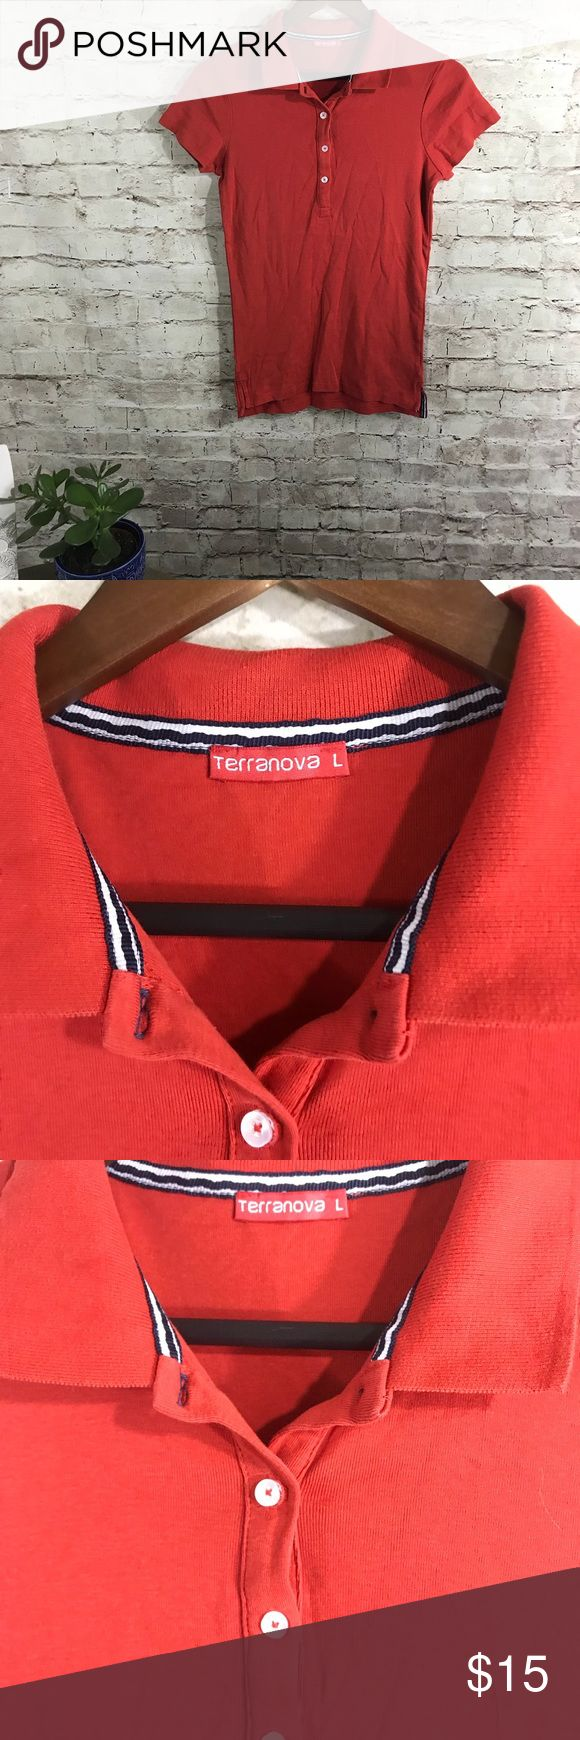 Red polo shirt (k) Gently worn , red polo shirt. Short sleeves. Size L button up v neck. Very popular European brand . Great quality terranova Tops Tees - Short Sleeve